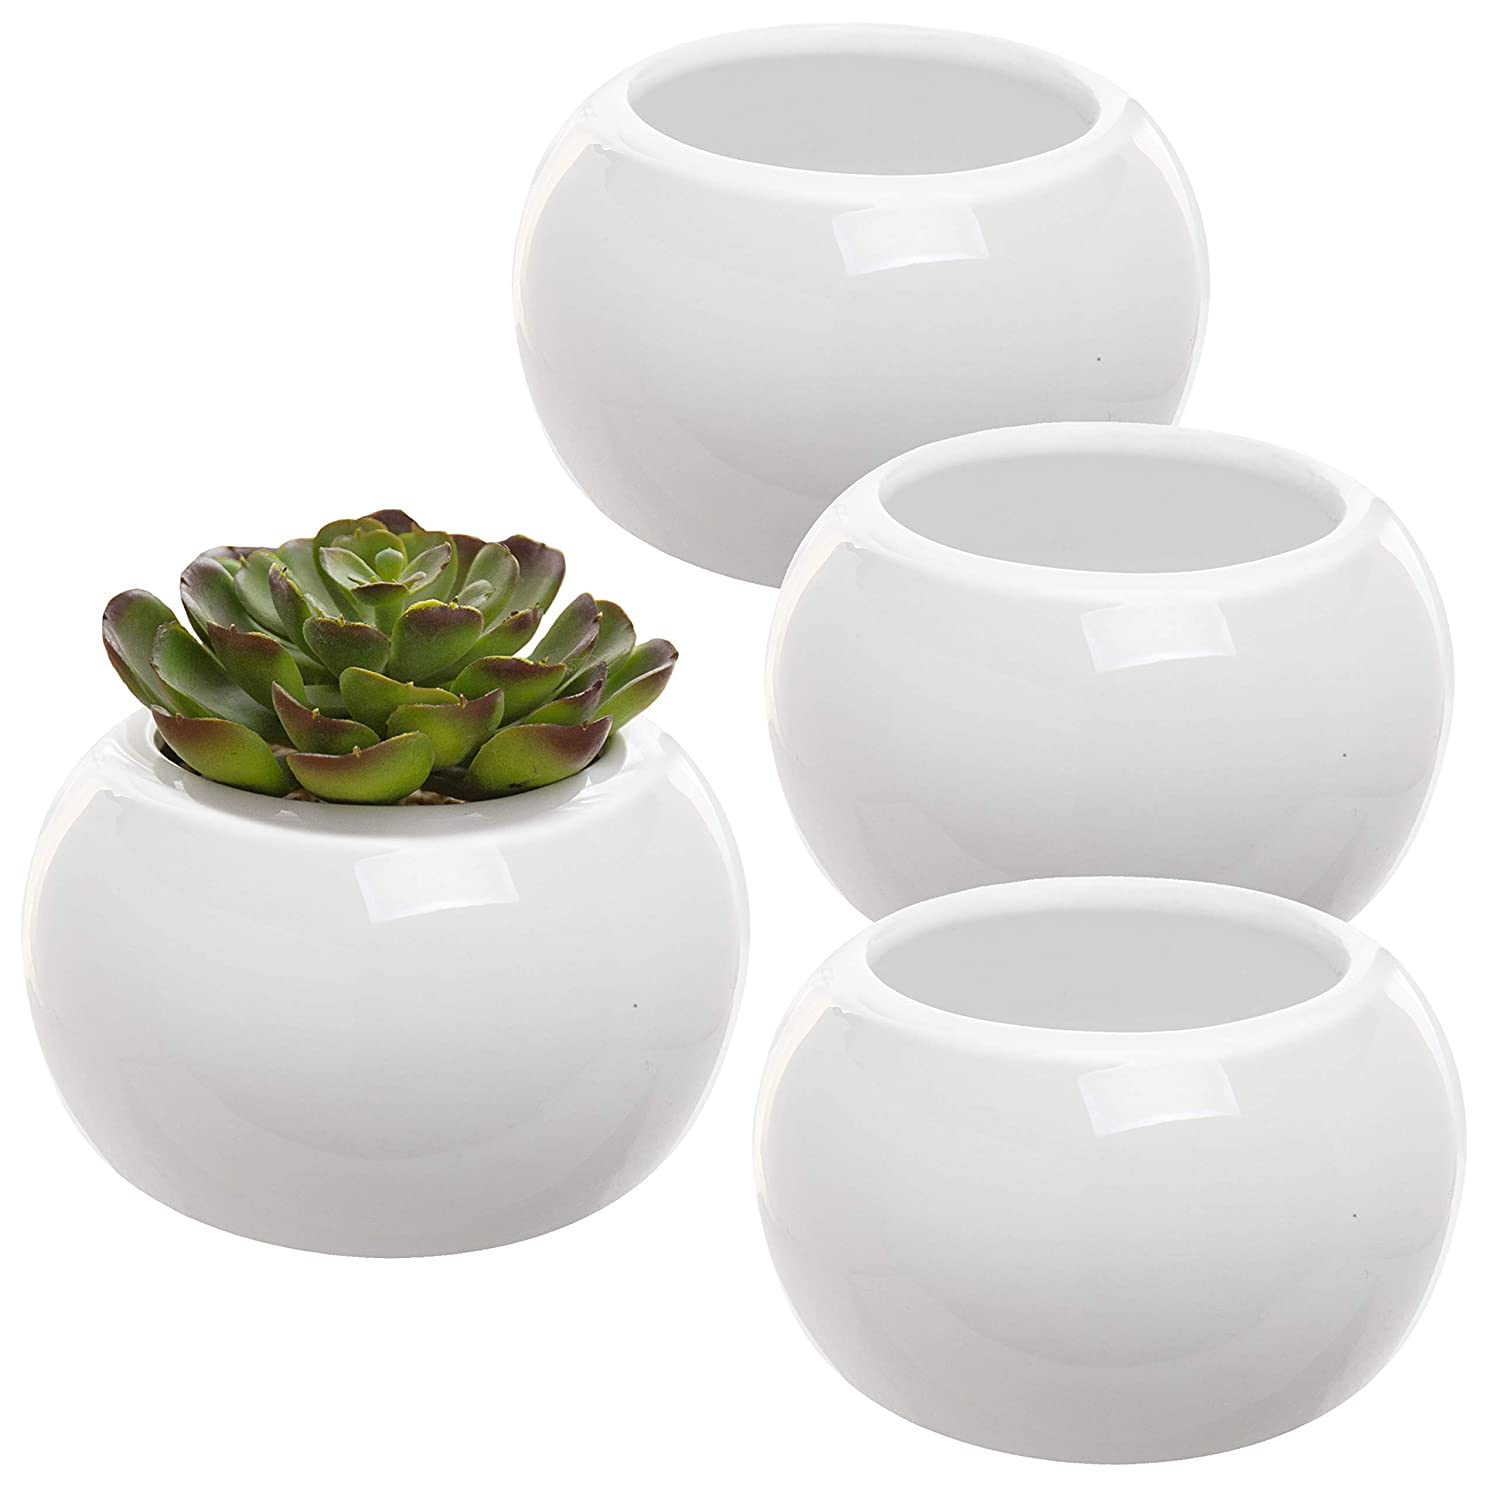 225 & MyGift Modern 3-Inch Round White Ceramic Planters Small Flower Pot Containers Set of 4